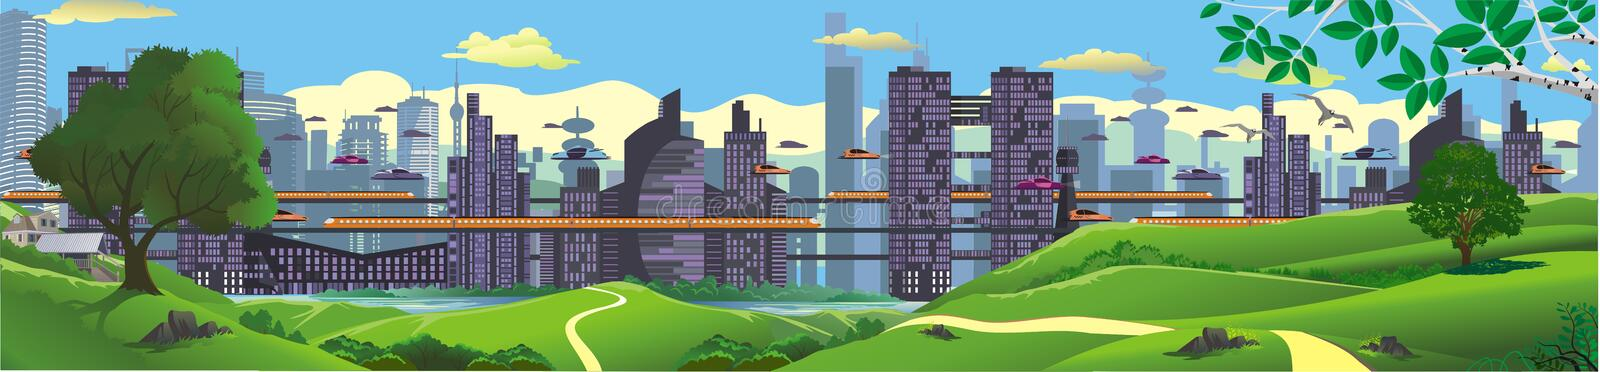 Panorama - landscape. The view from the hilltop to the metropolis of the future. royalty free illustration